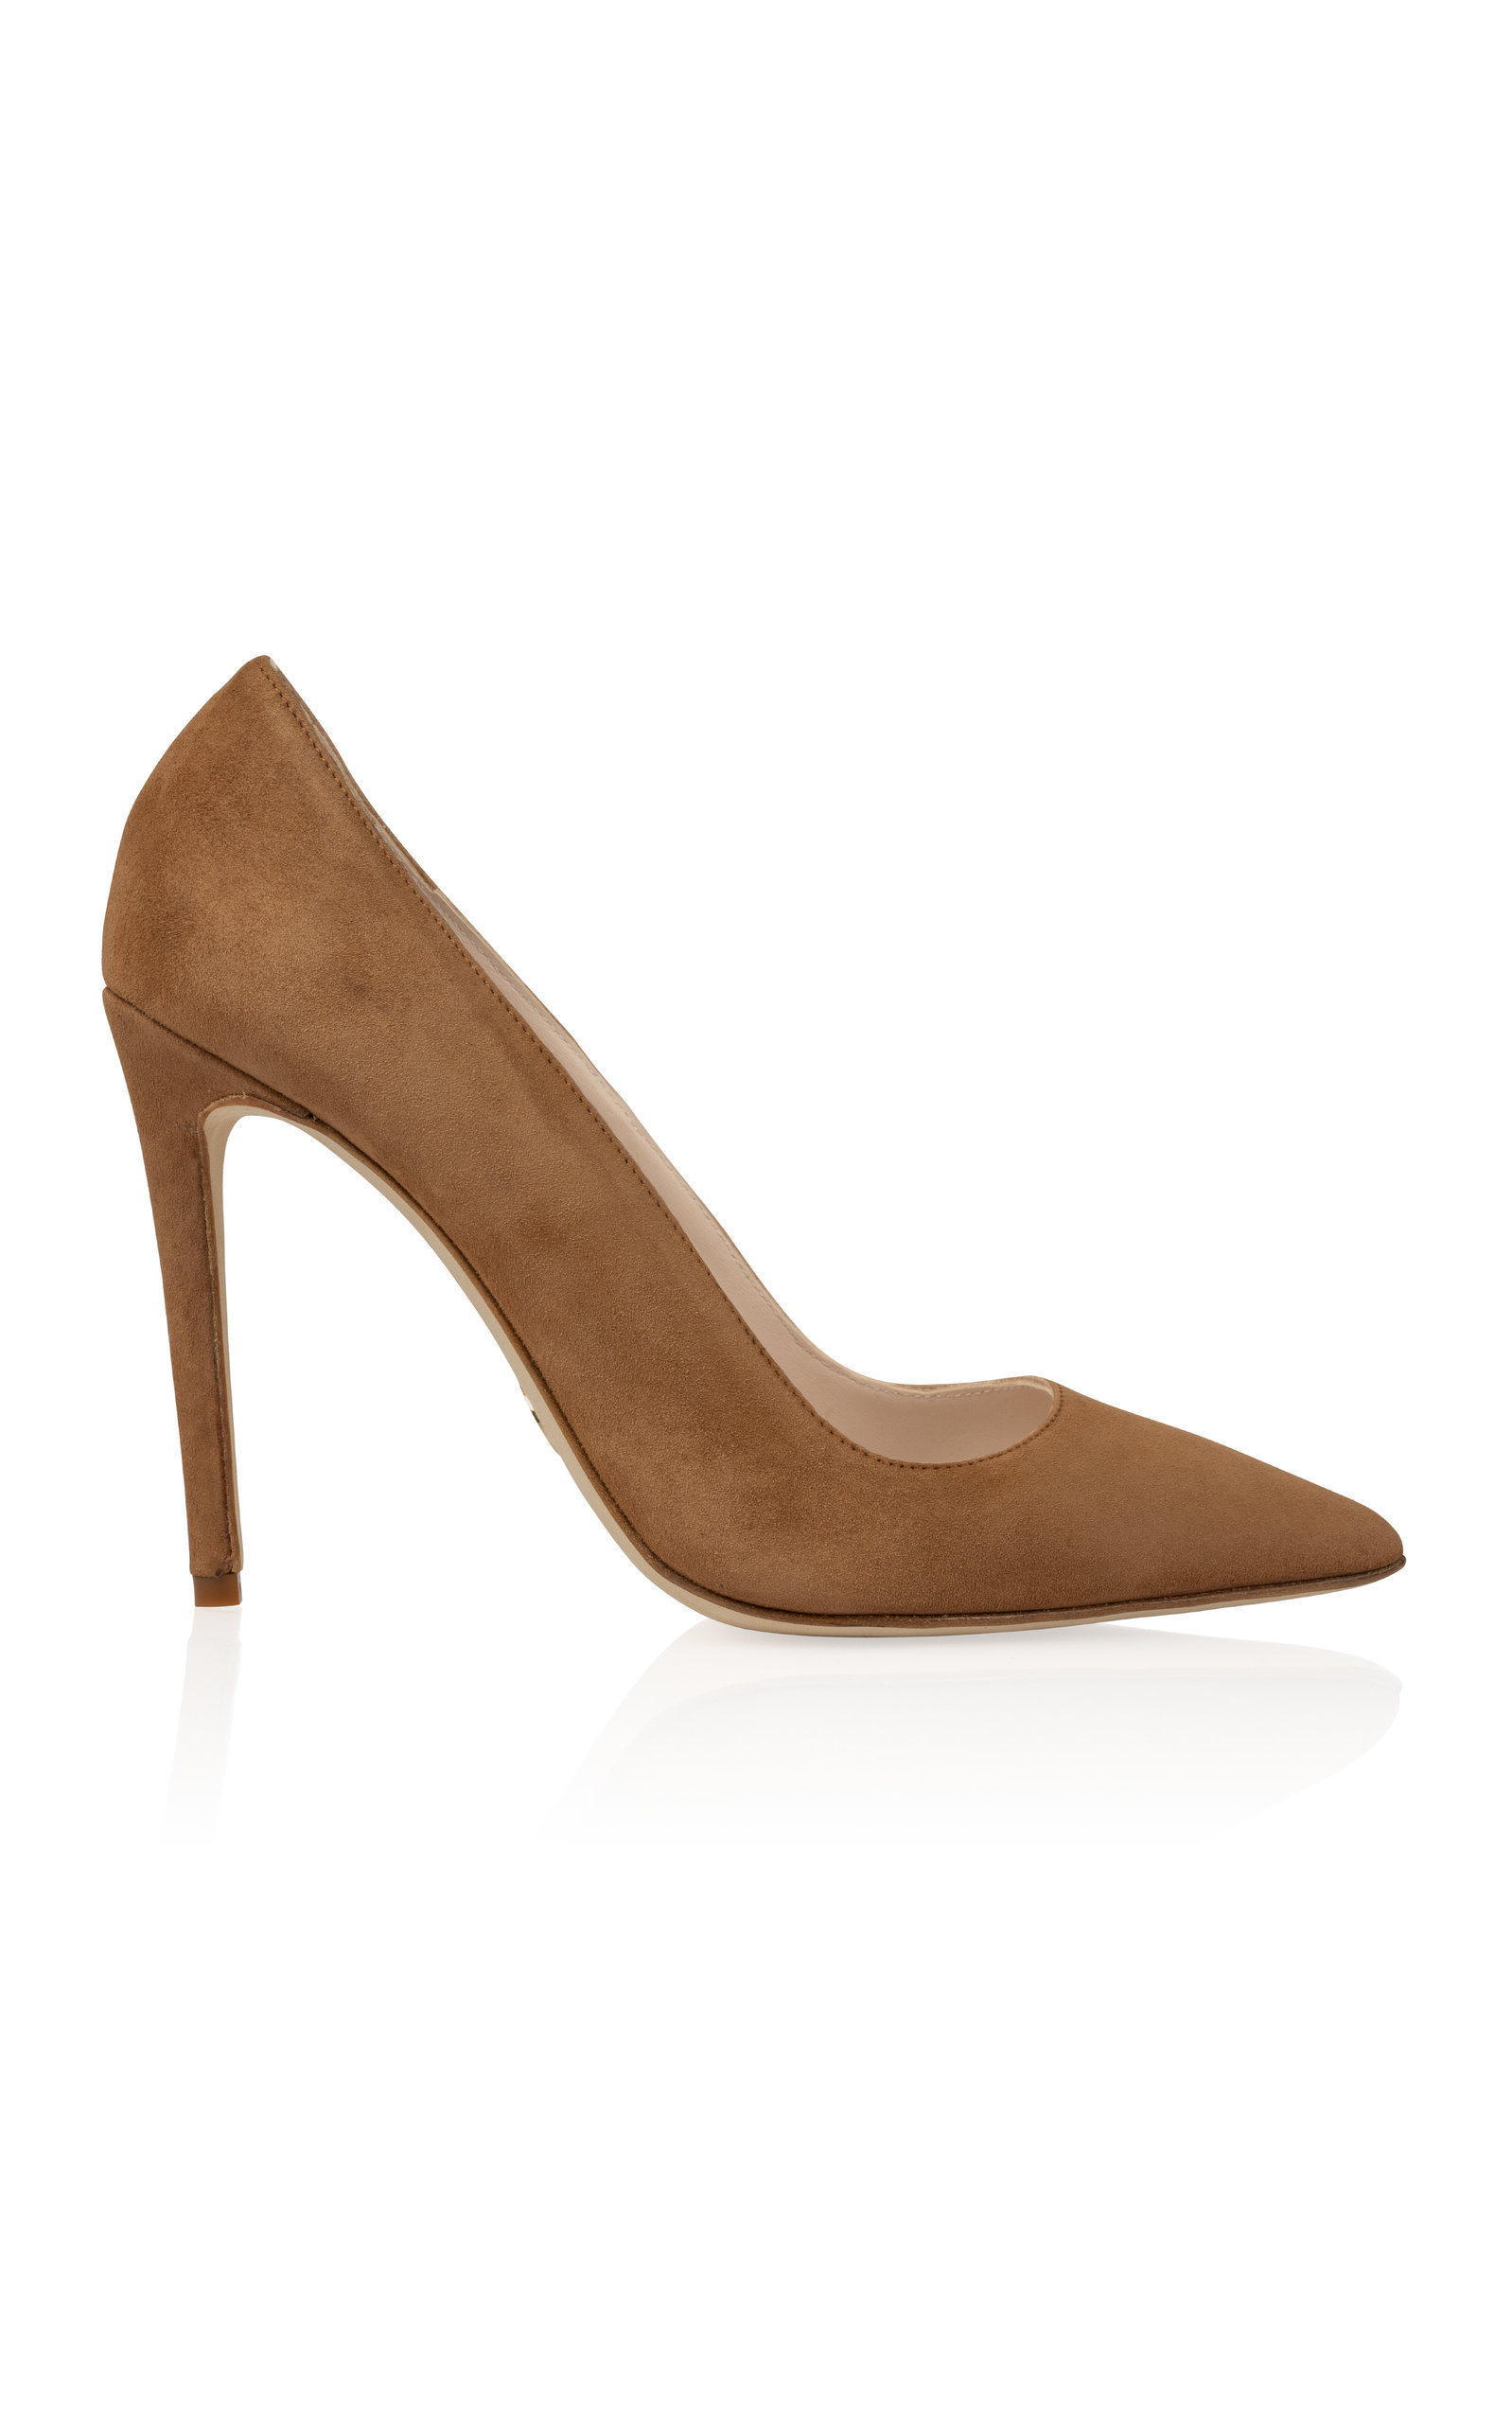 Brother Vellies Pumps M'O EXCLUSIVE EARTHA THE NEW NUDE PUMPS